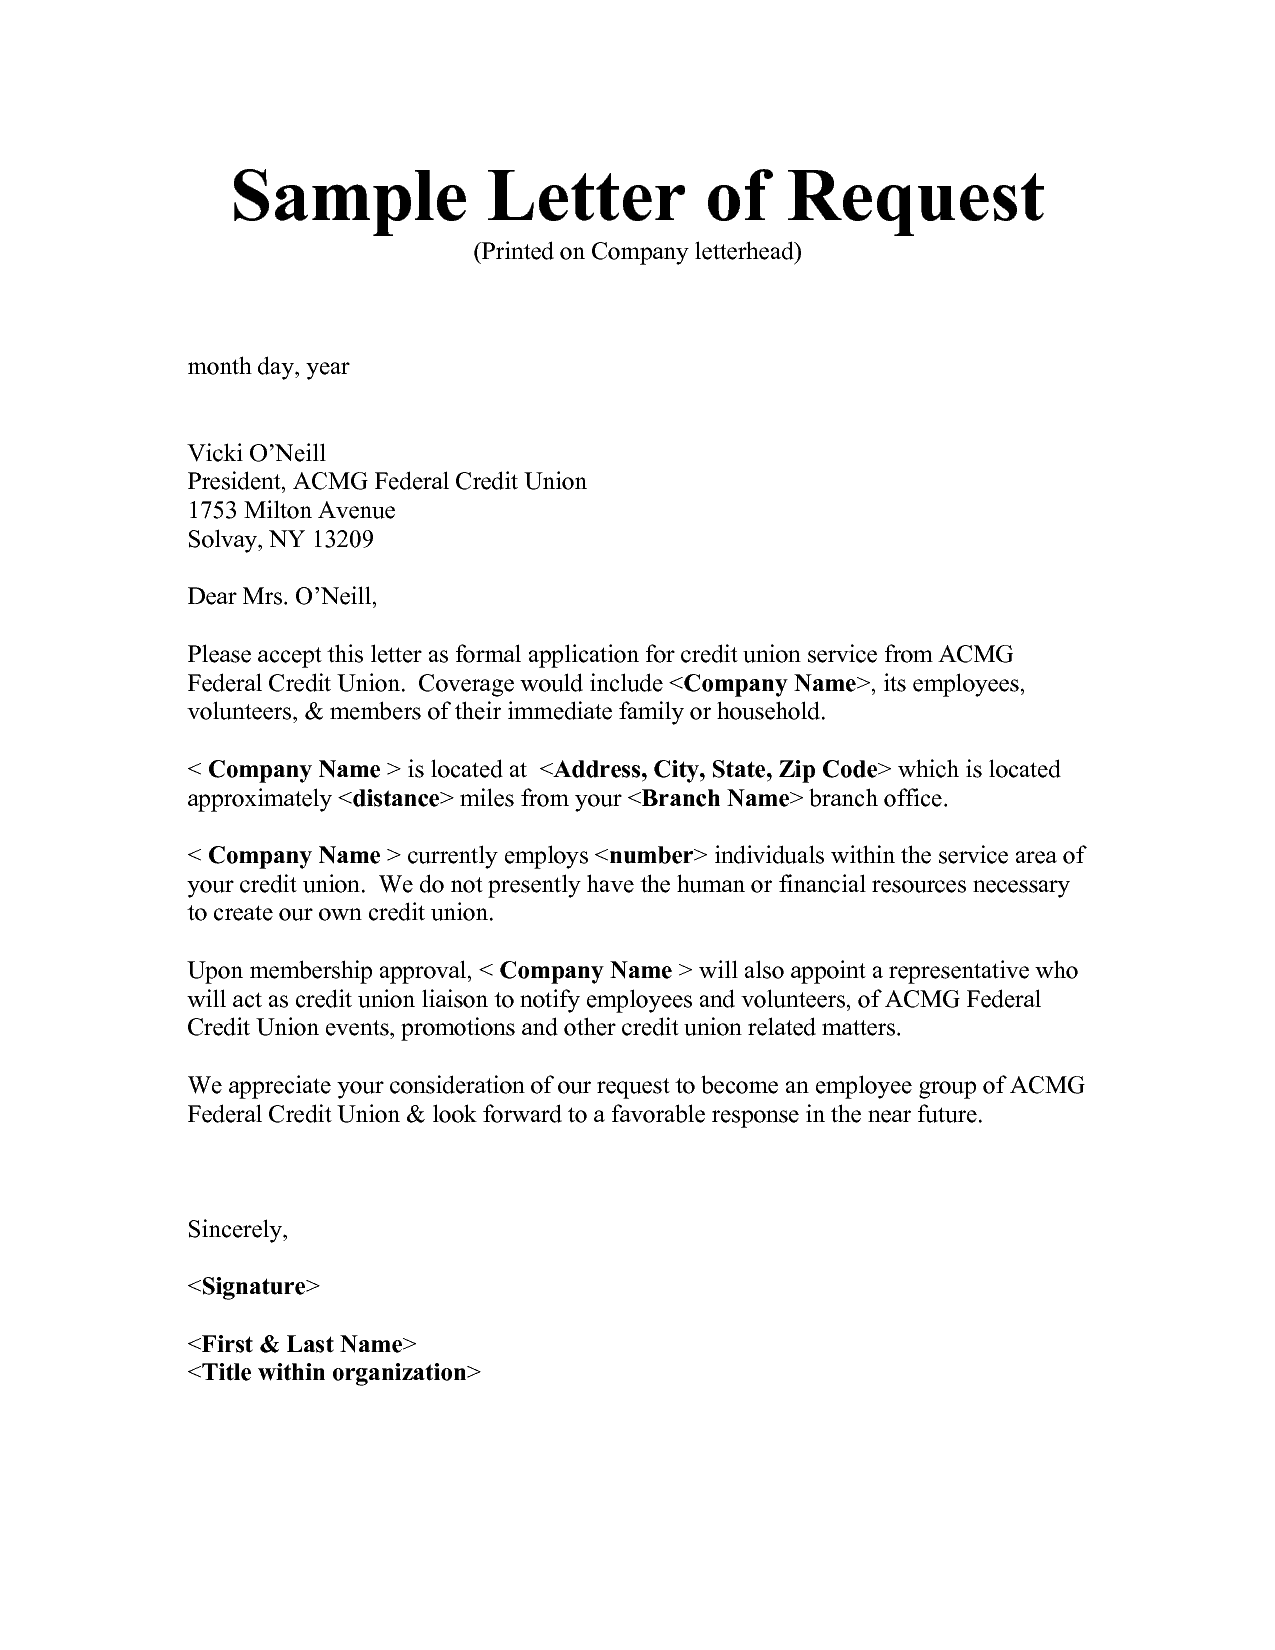 Sample letter business letter requesting information sample letters business letter requesting information sample letters format spiritdancerdesigns Images